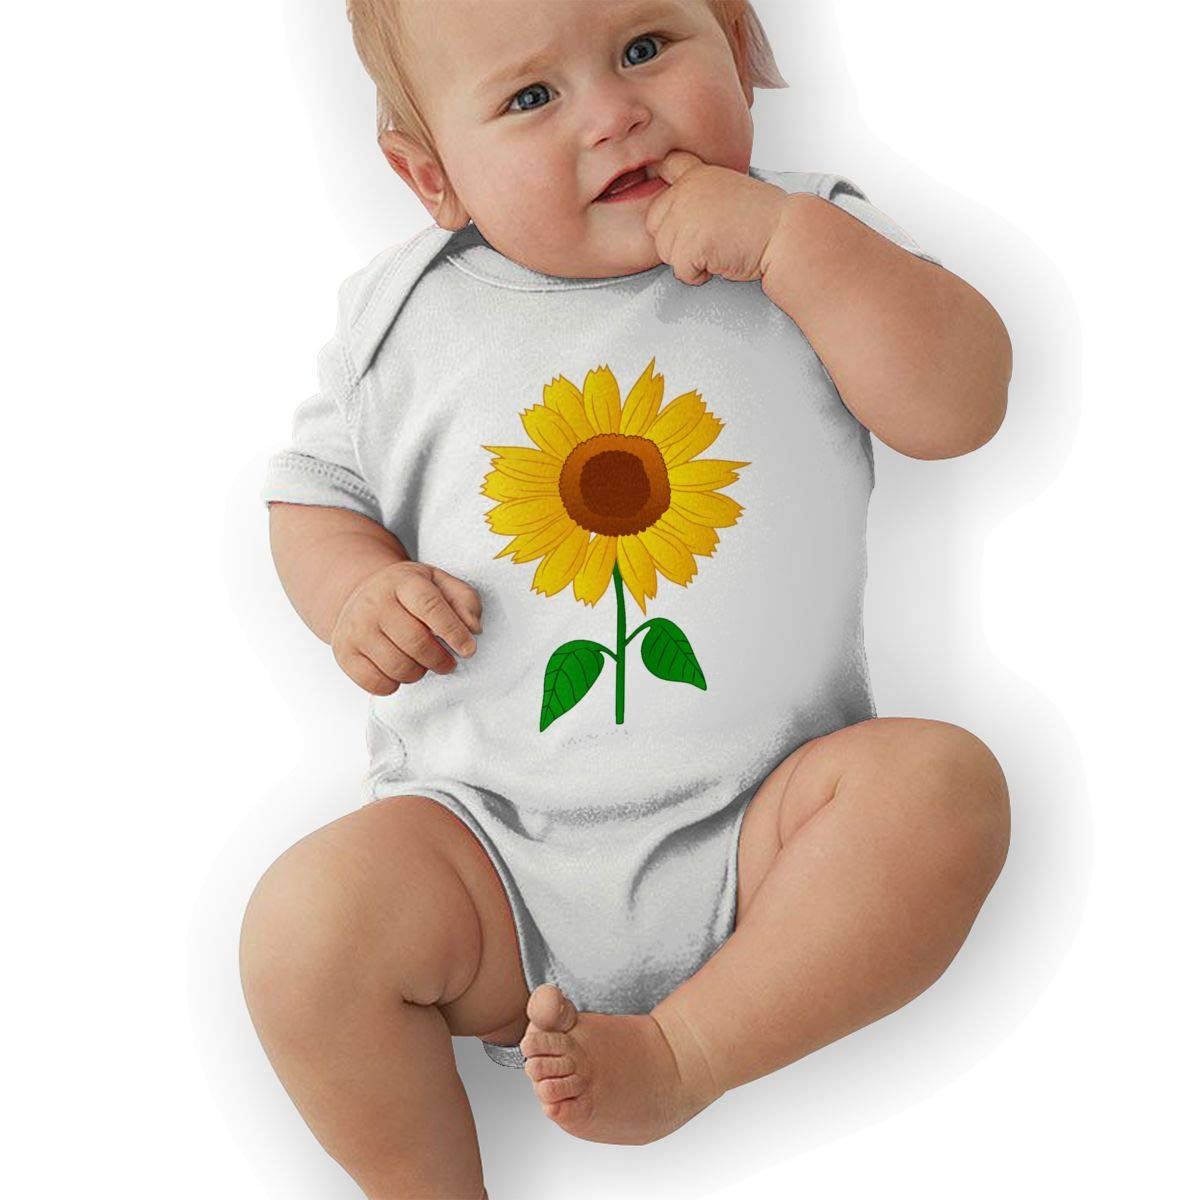 BONLOR Sunflower Clipart Baby Rompers One Piece Jumpsuits Summer Outfits Clothes White